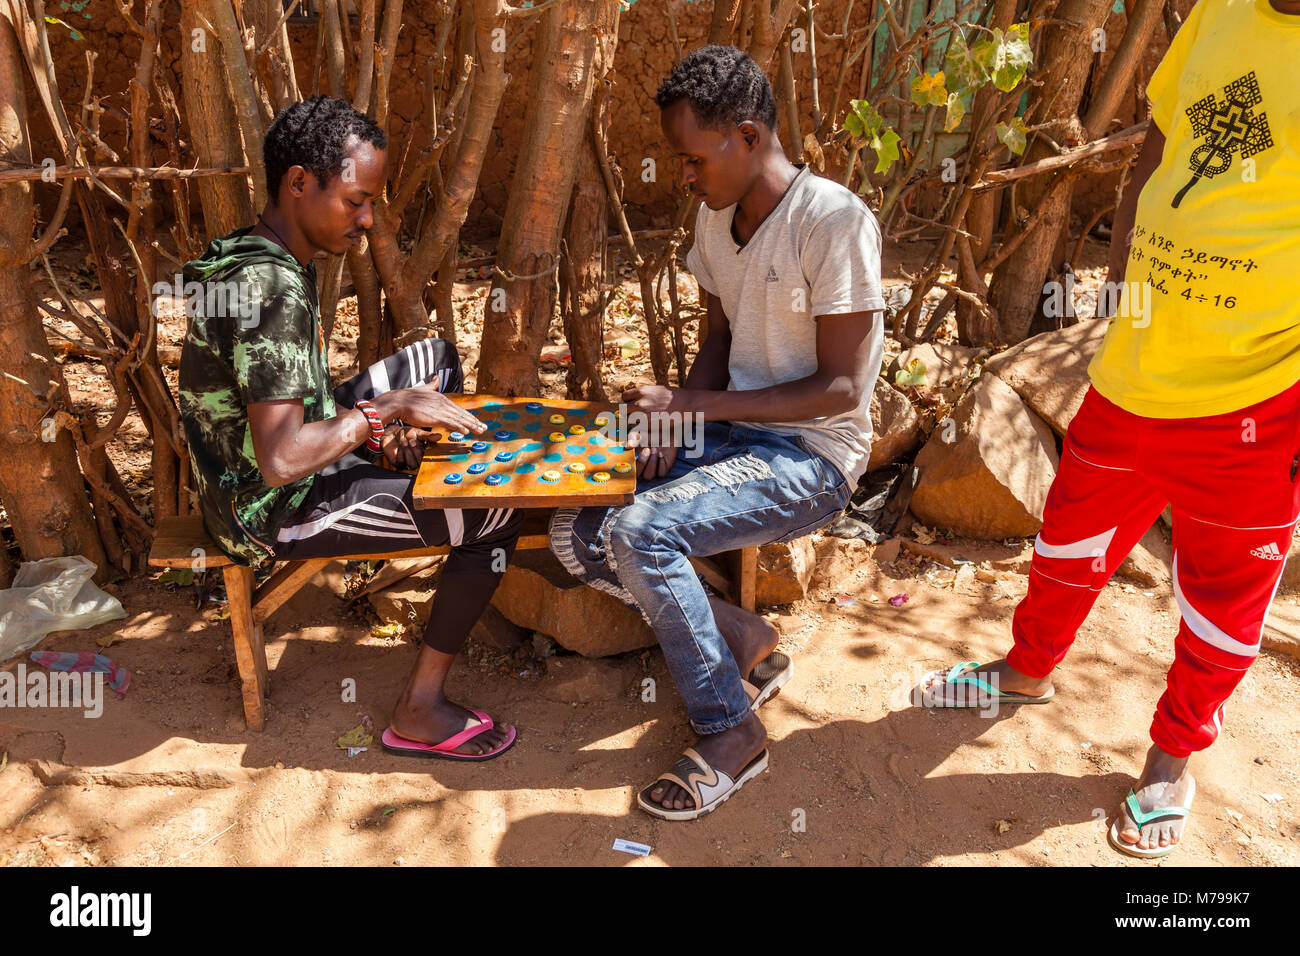 Two Young Men Play Draughts (Checkers) Using Bottle Tops, Dimeka, Omo Valley, Ethiopia - Stock Image